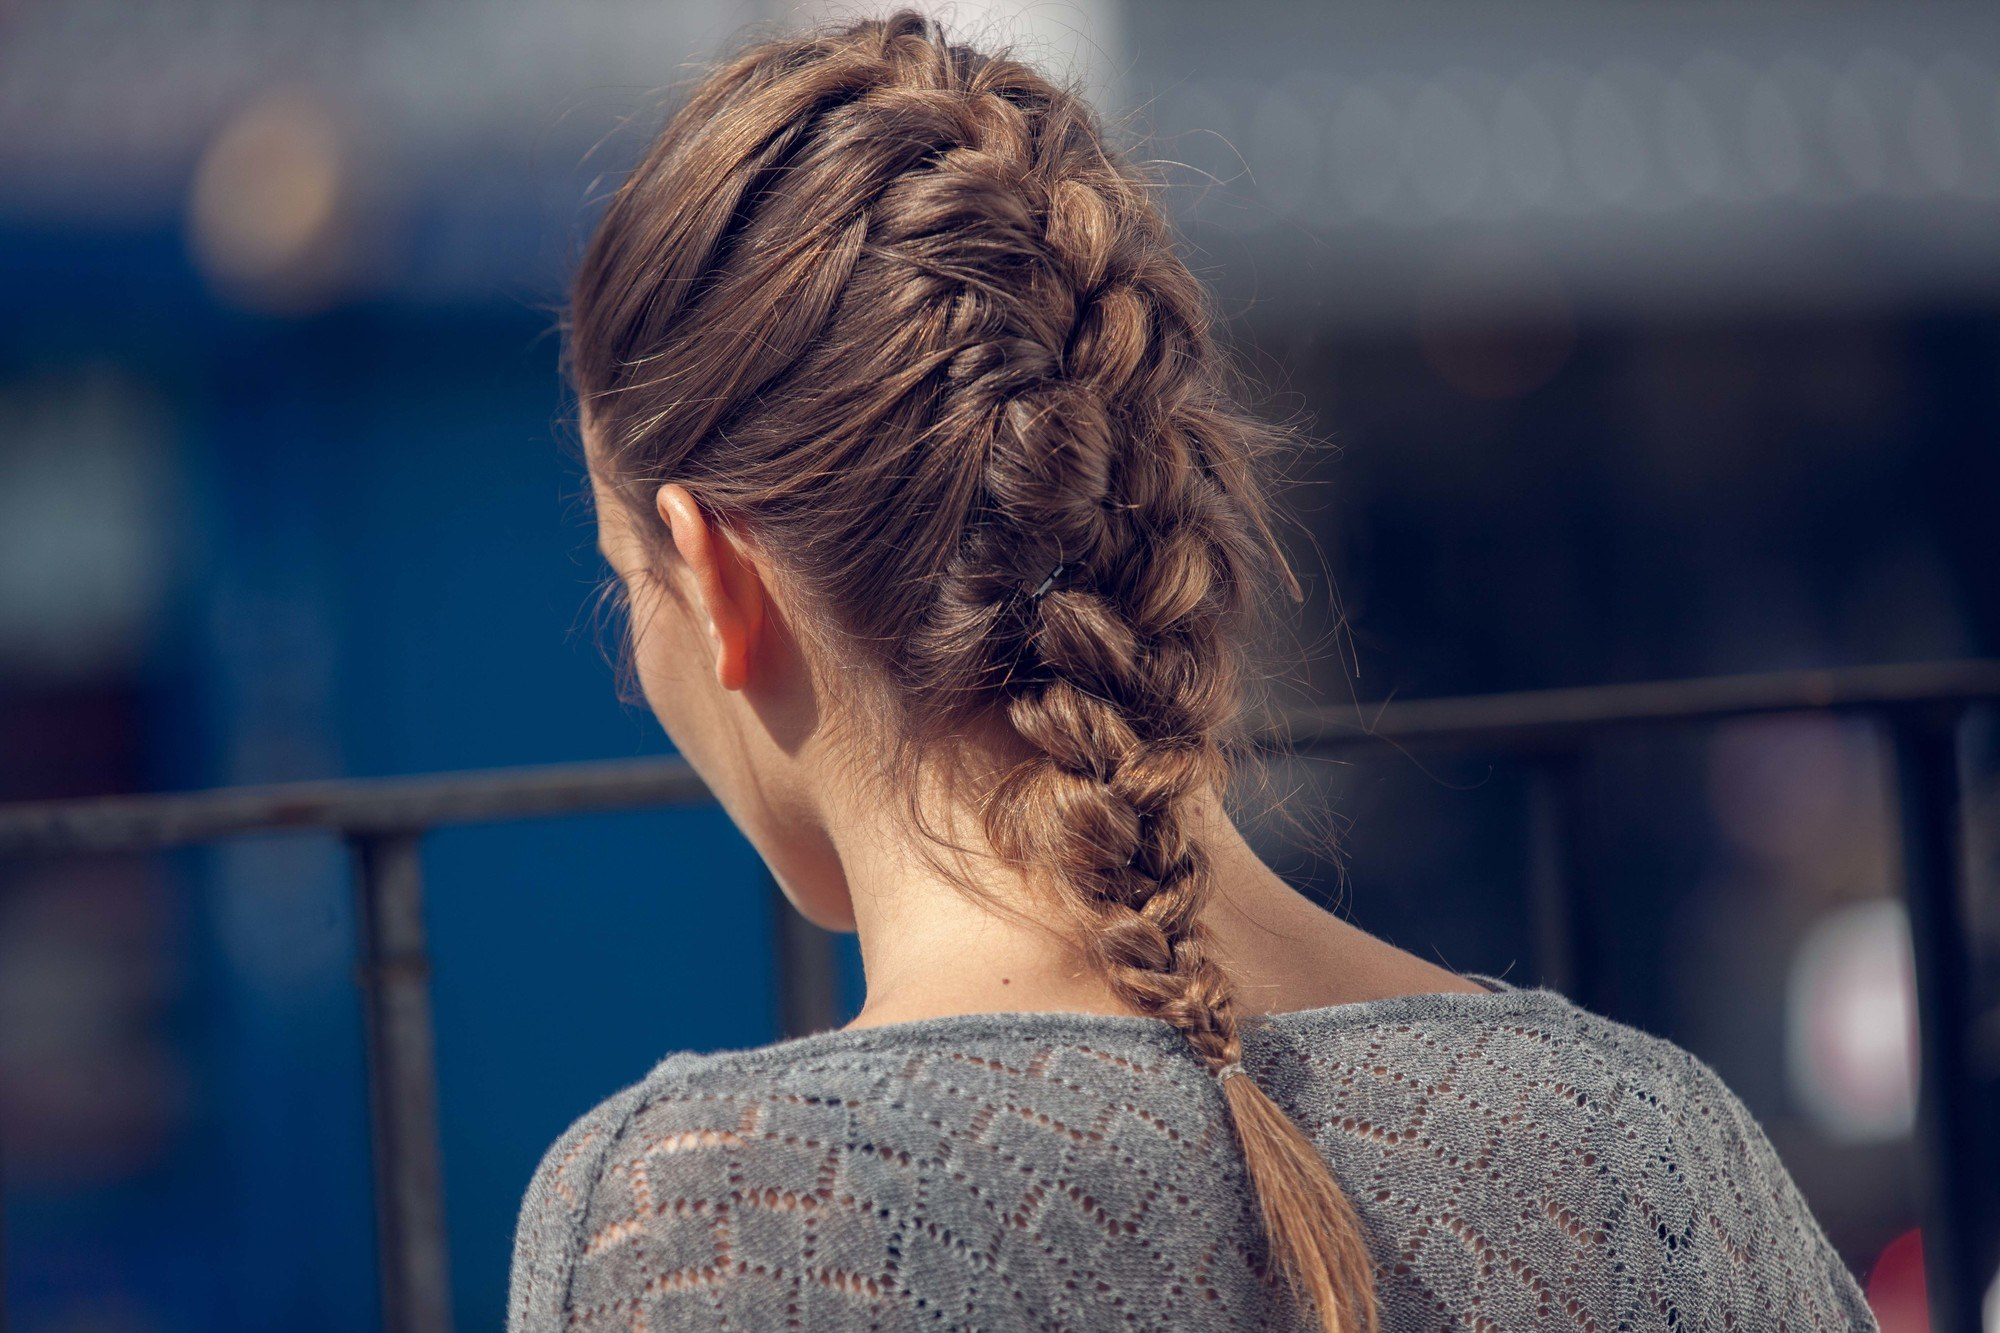 French braid hairtstyles: back view brunette with medium-length hair and a classic French plait